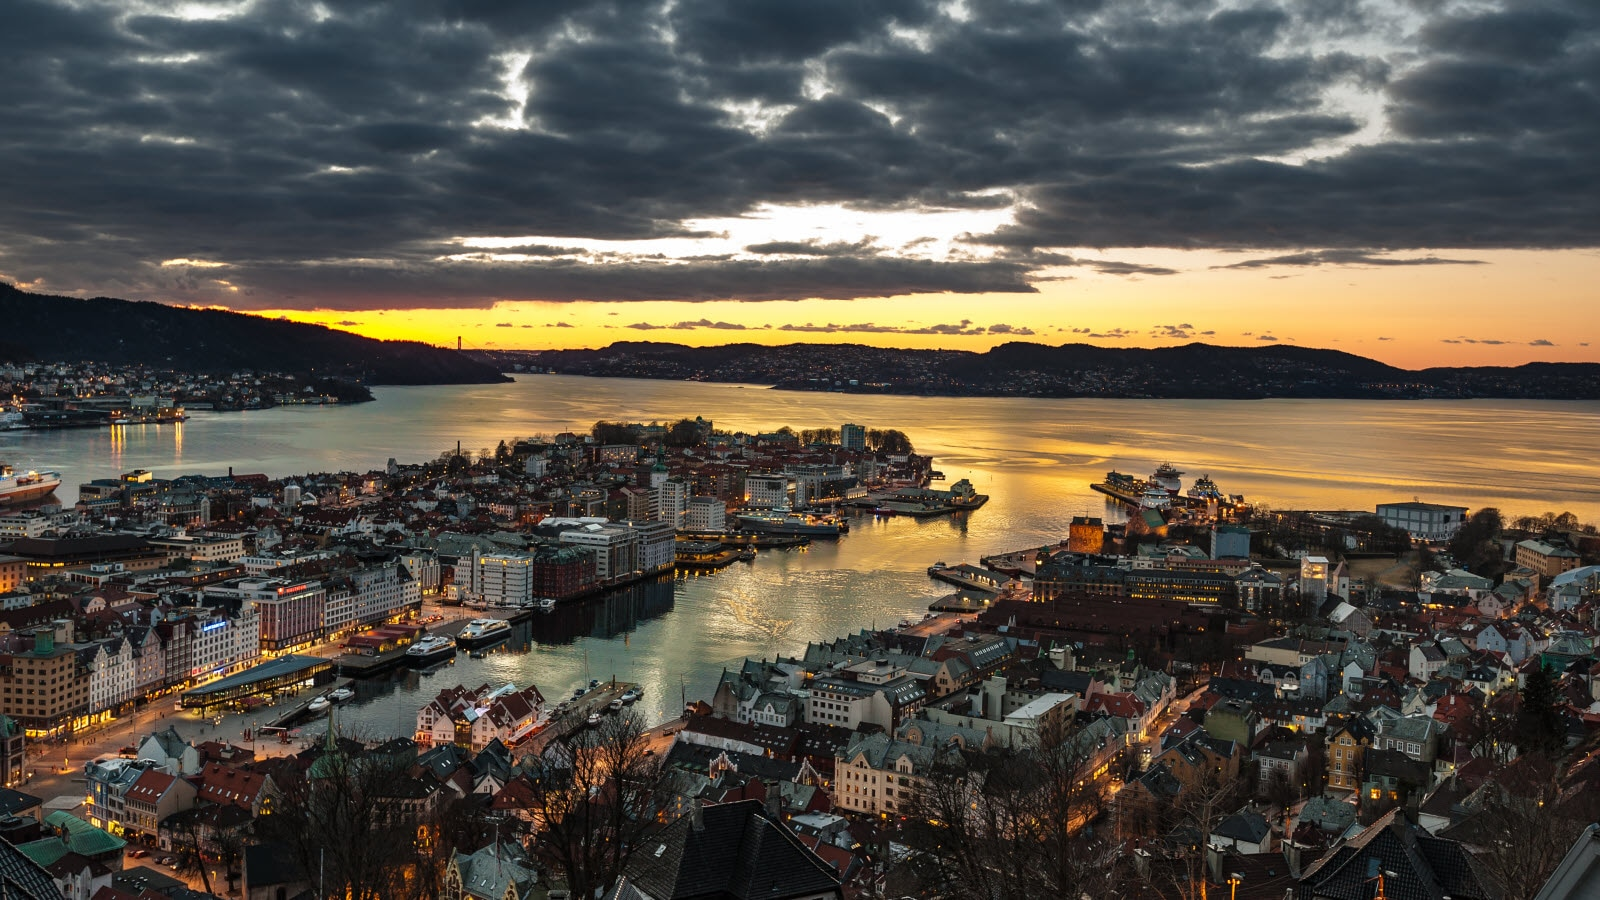 4588752-bergen-at-night_by_Buckley.jpg